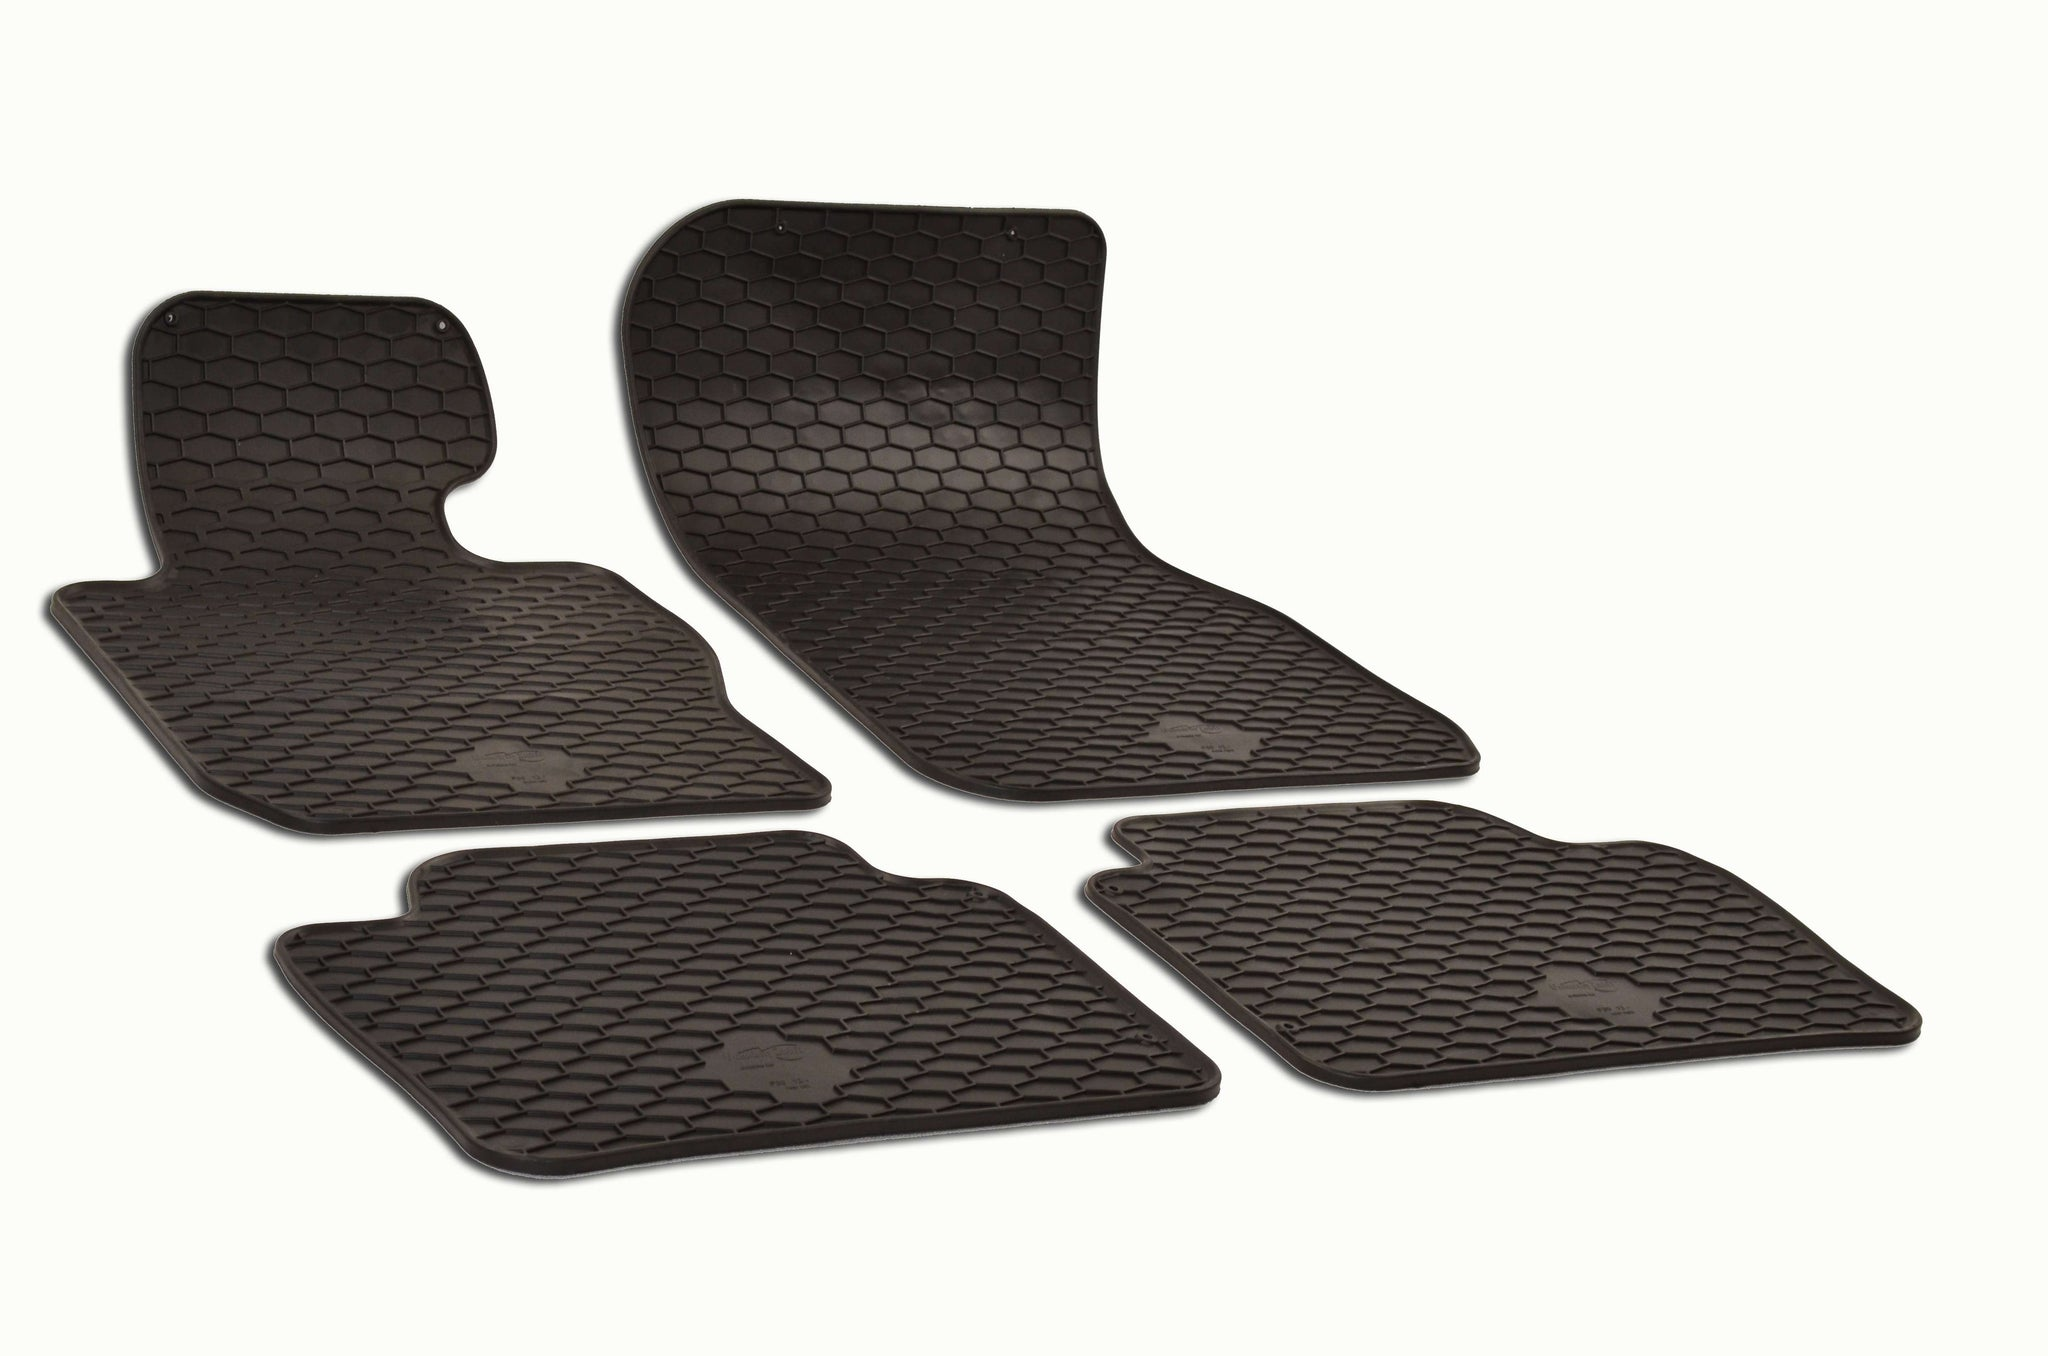 BMW 430i 2017 F32 Coupe Set of 4 Black Rubber OE Fit All Weather Floor Mats